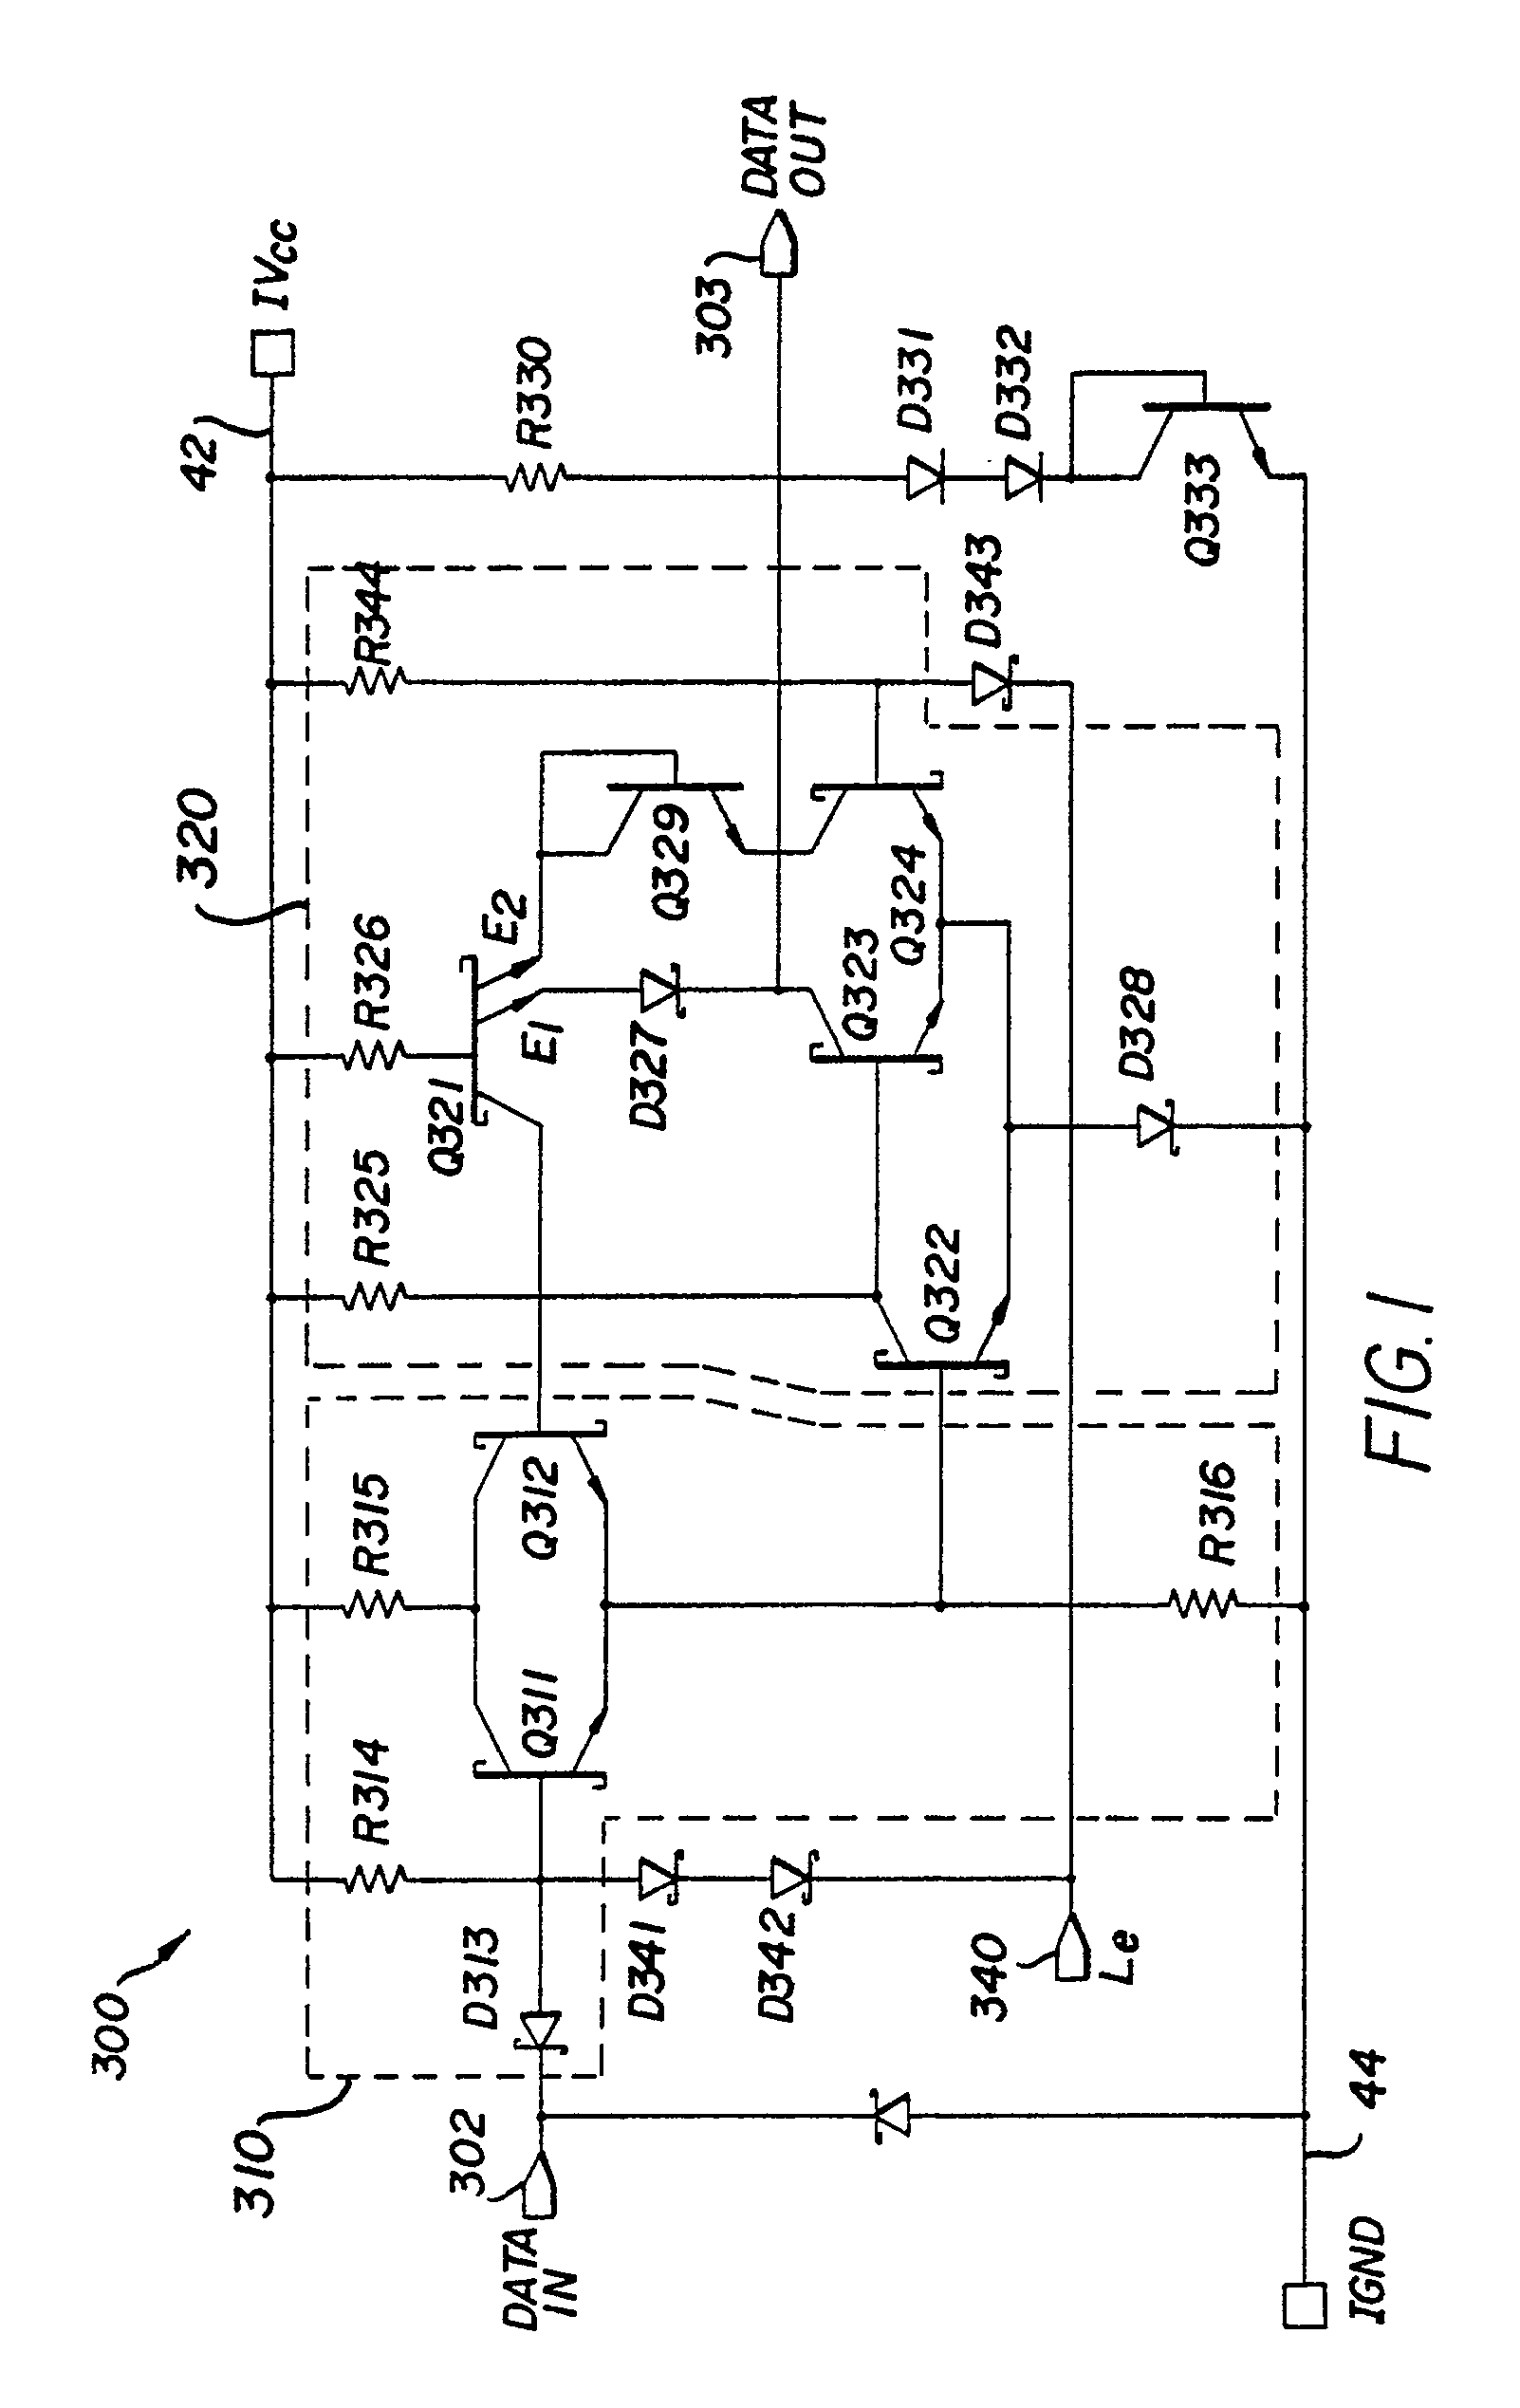 patent ep0448135a2 - an output buffer circuit